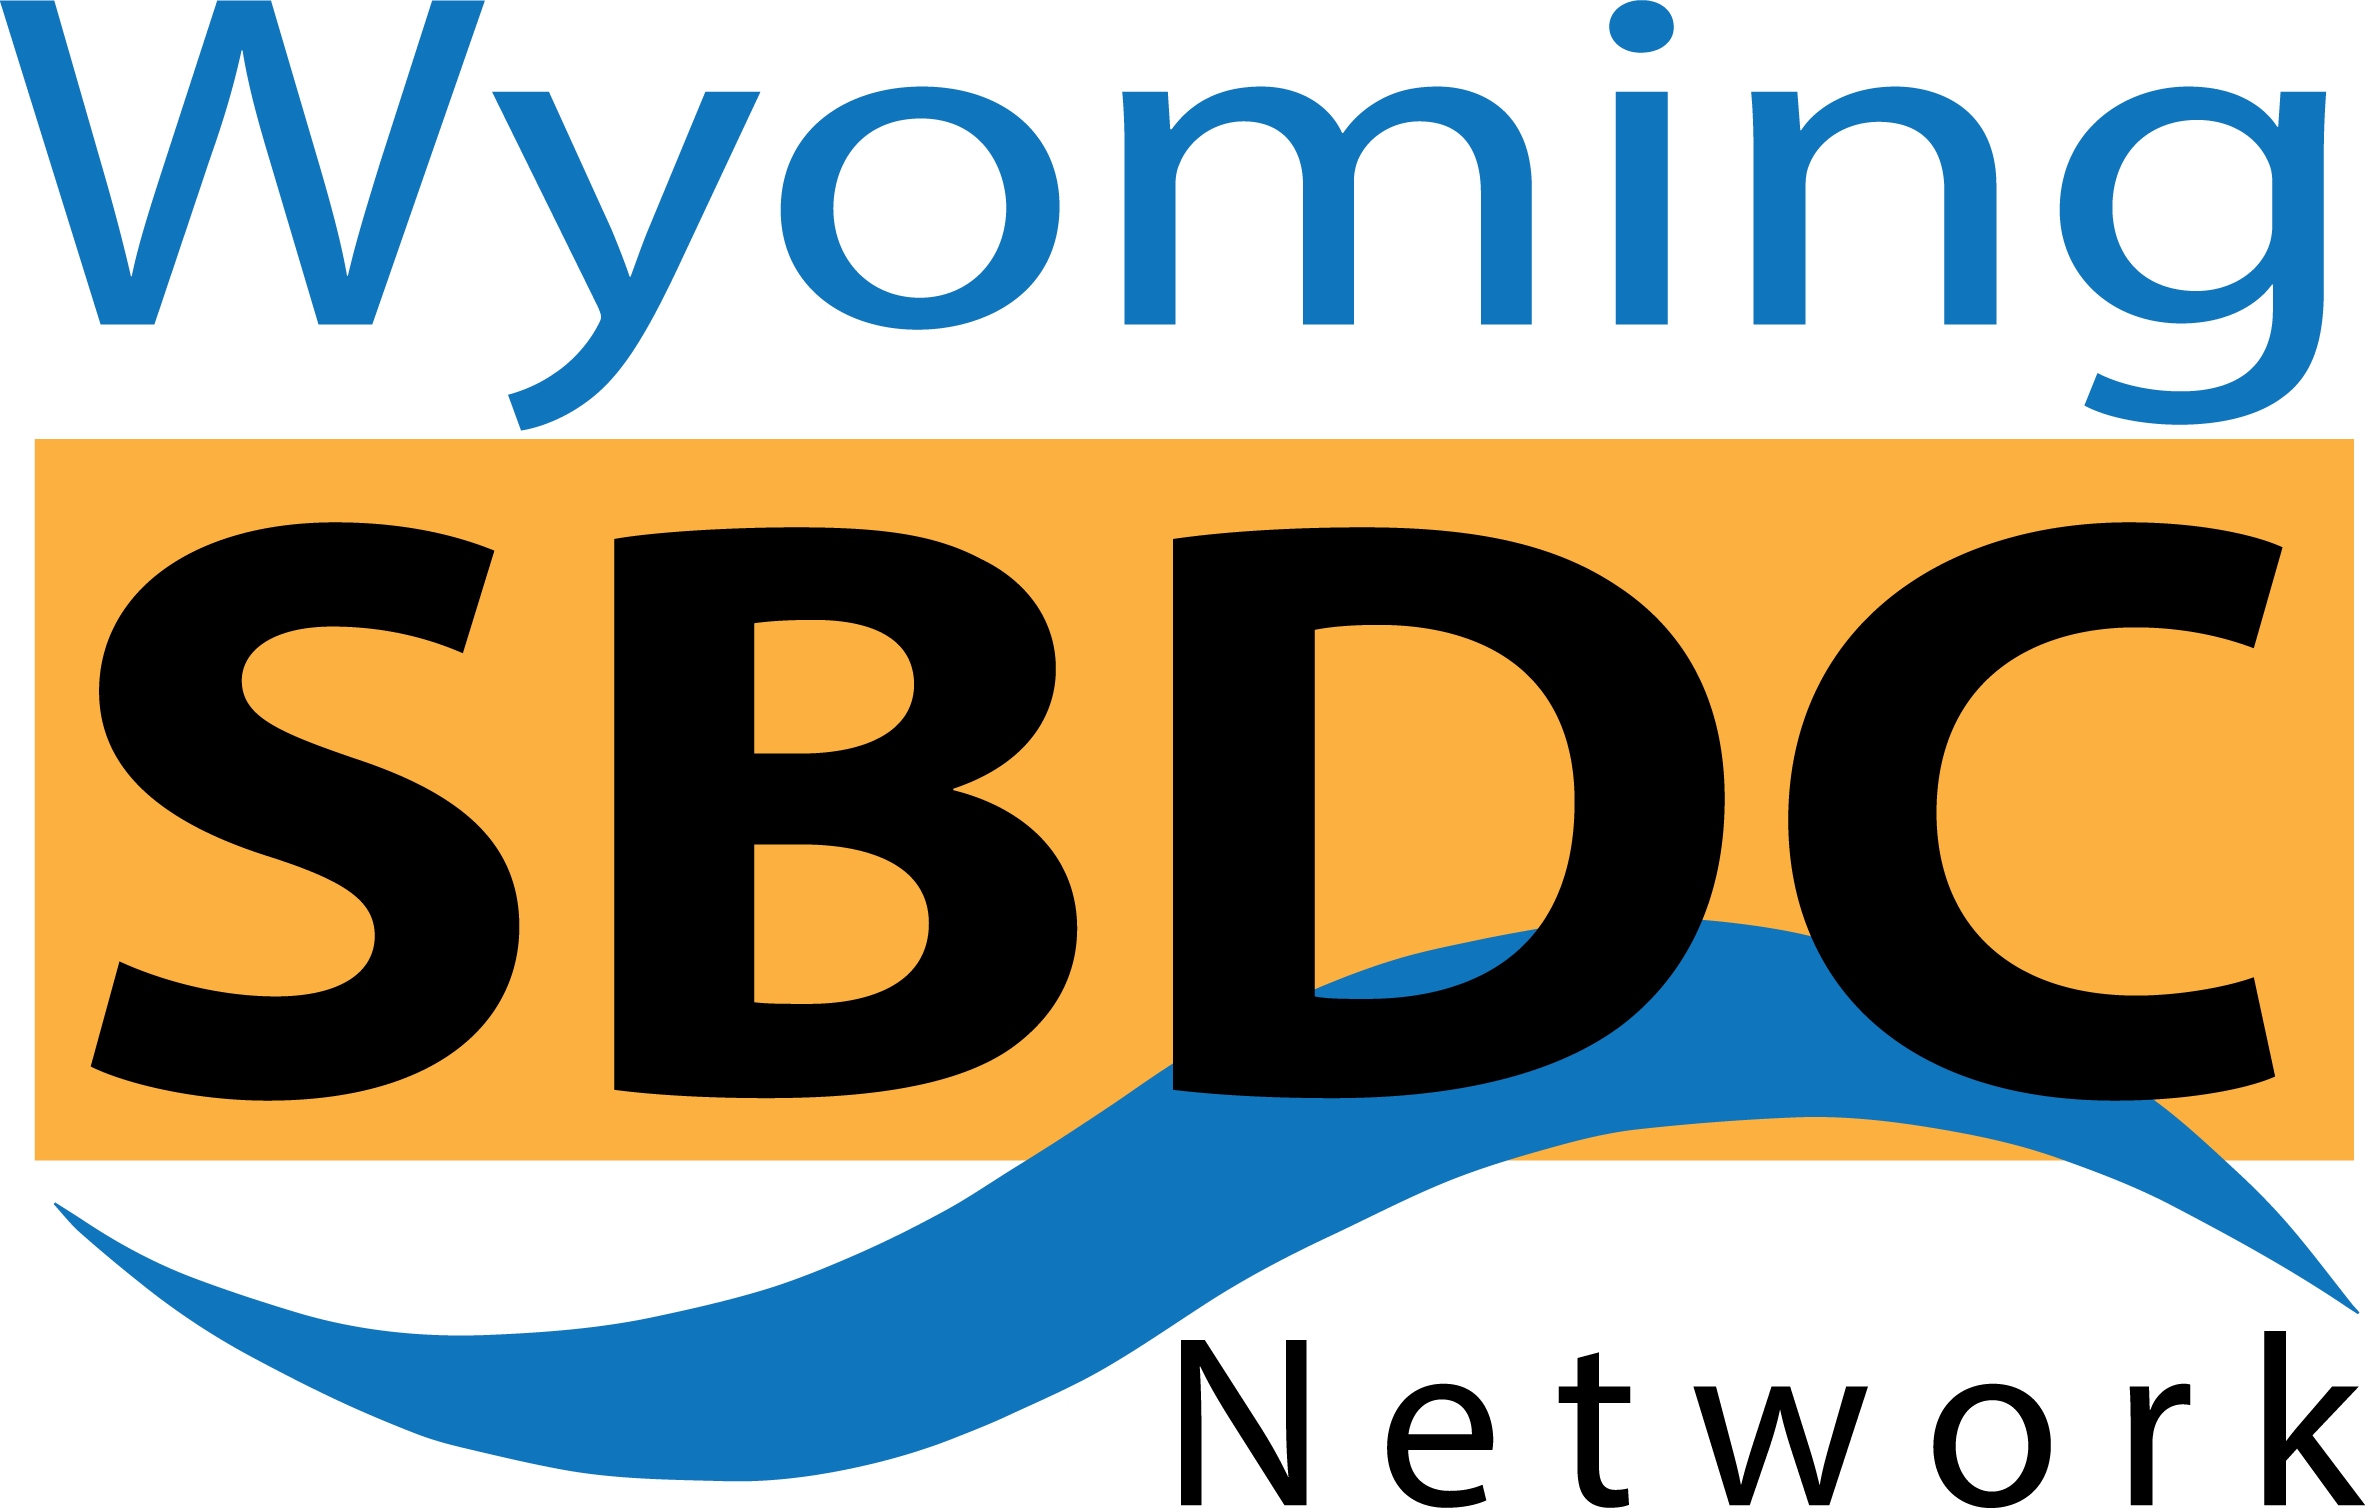 Wyoming SBDC Network Receives Grant to Commercialize Tech Innovations